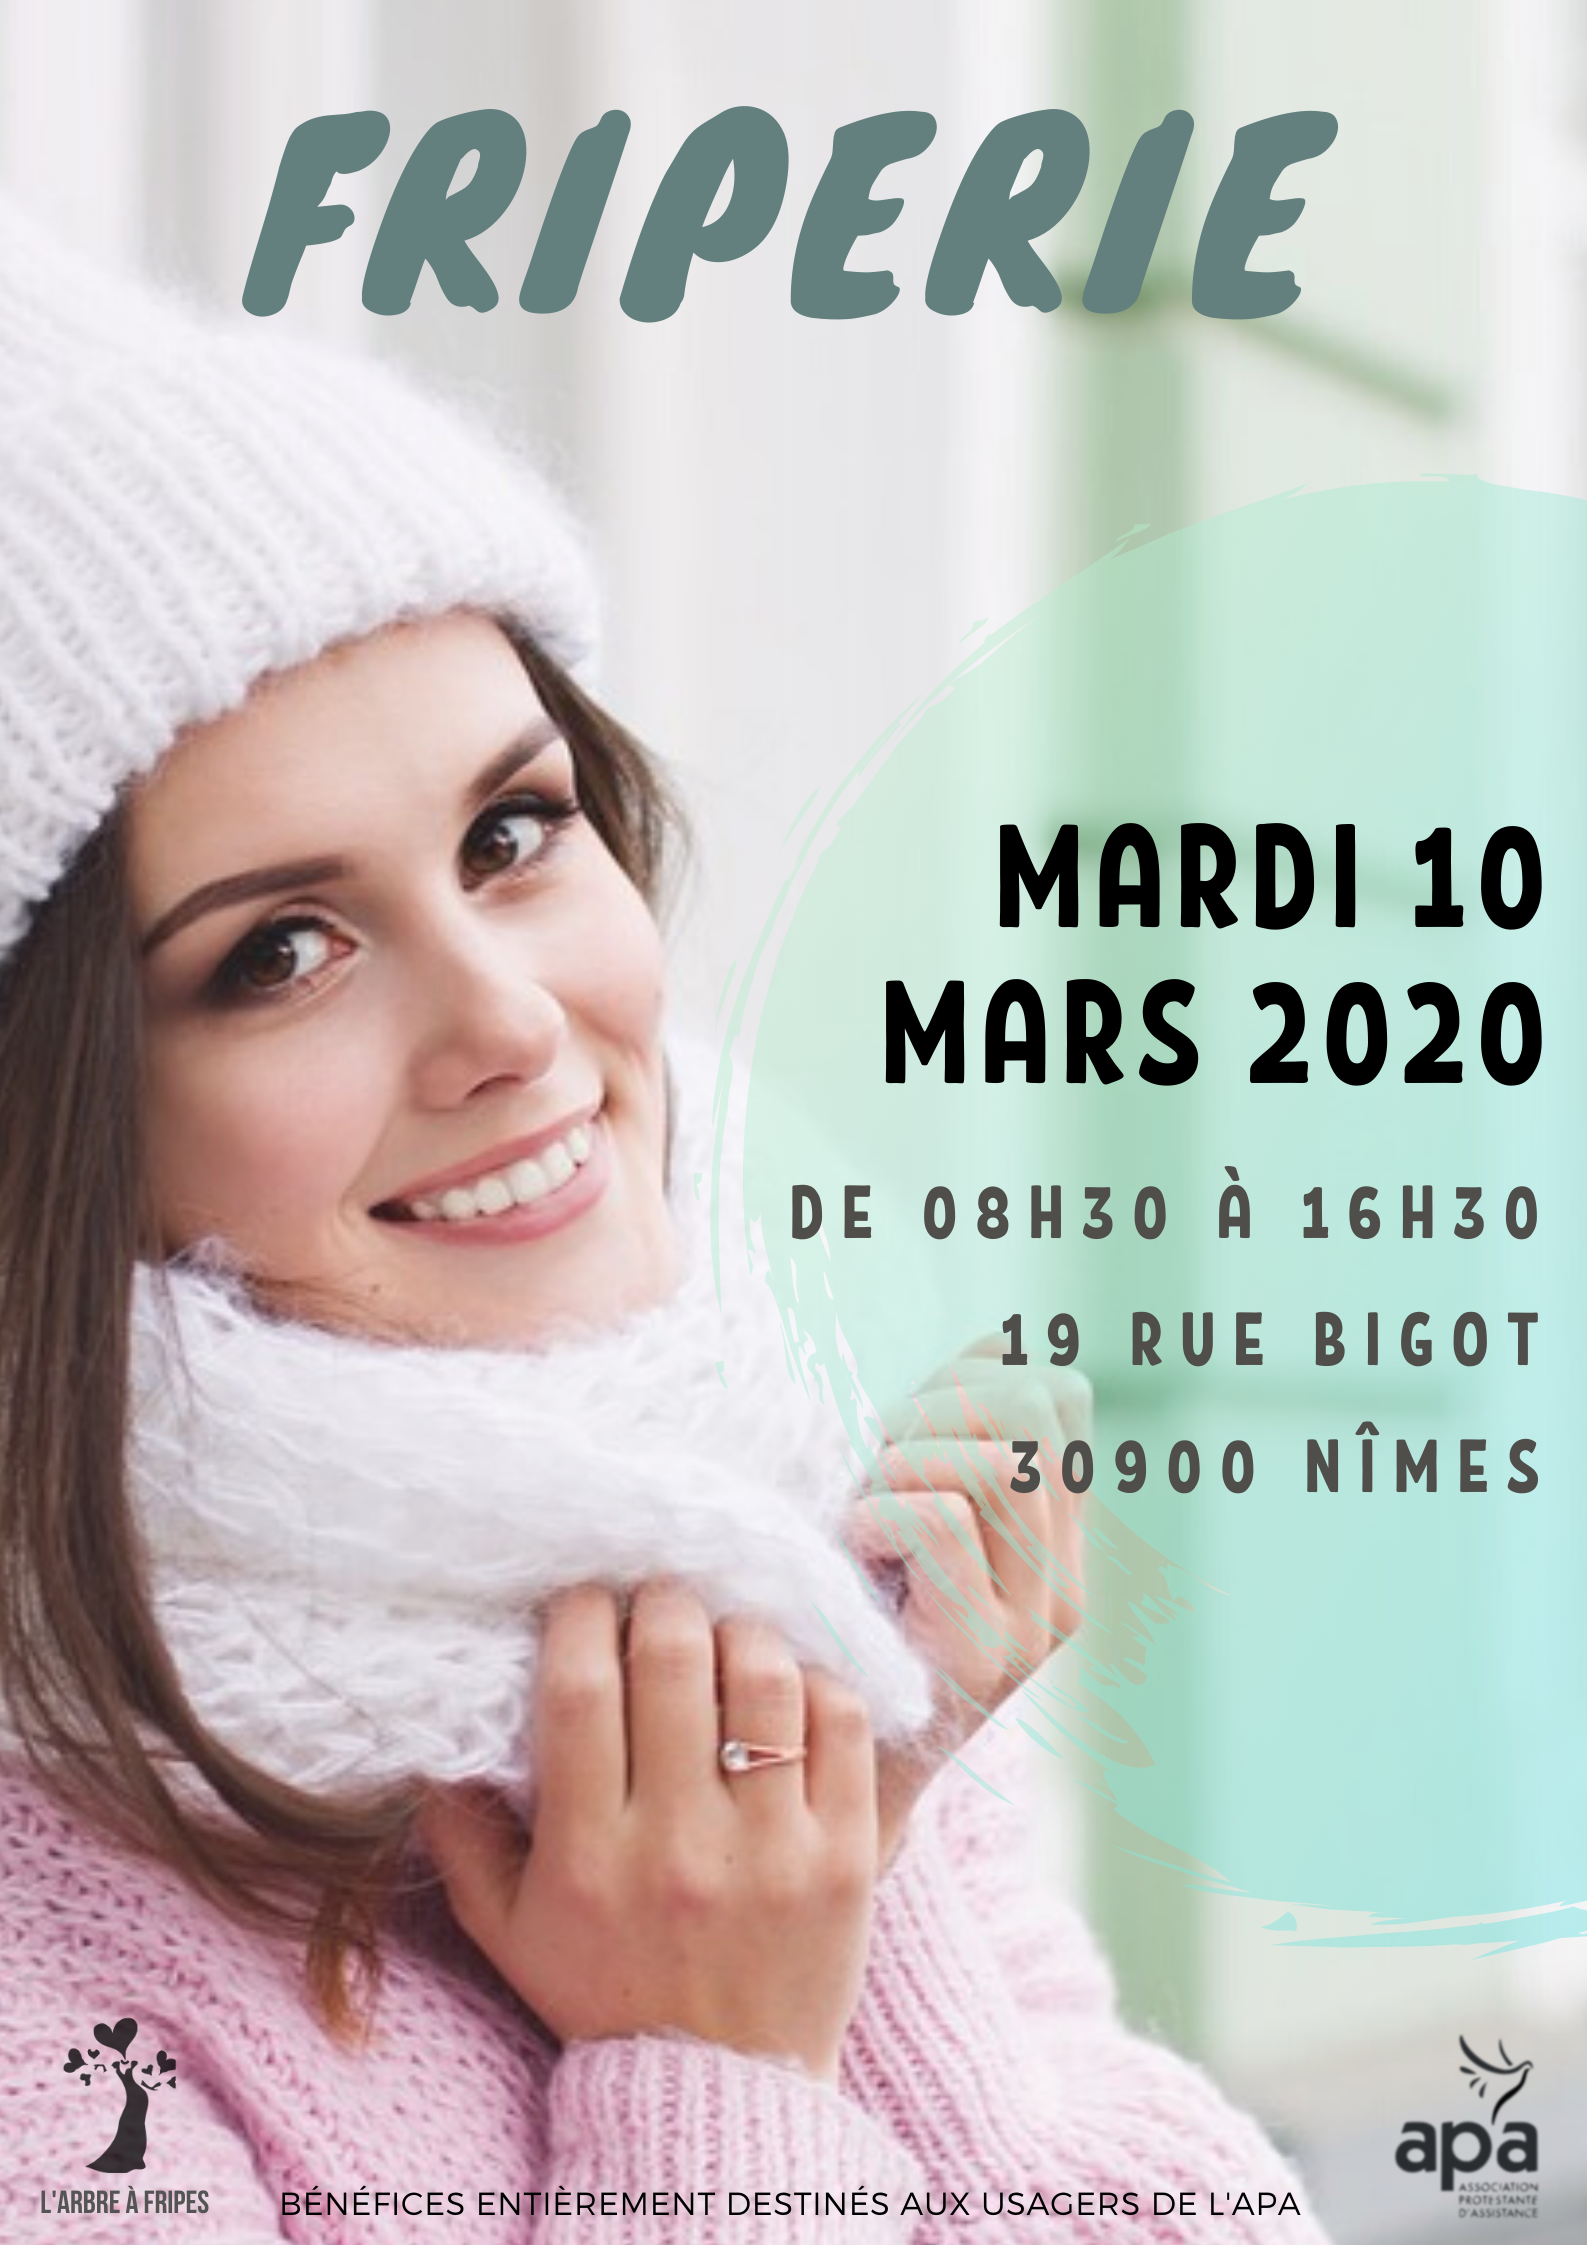 Friperie mars 2020